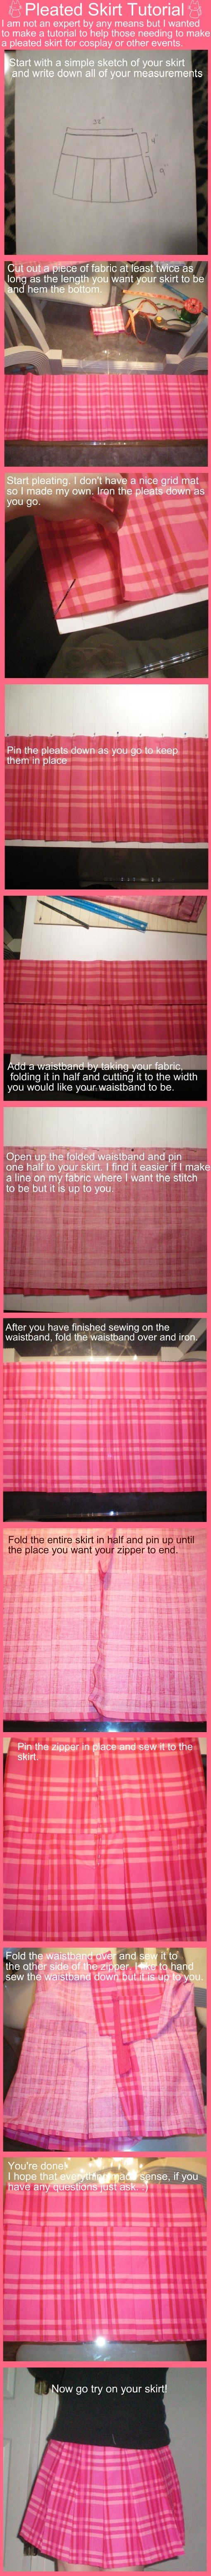 Pleated School Skirt Tutorial by stevoluvmunchkin on deviantART